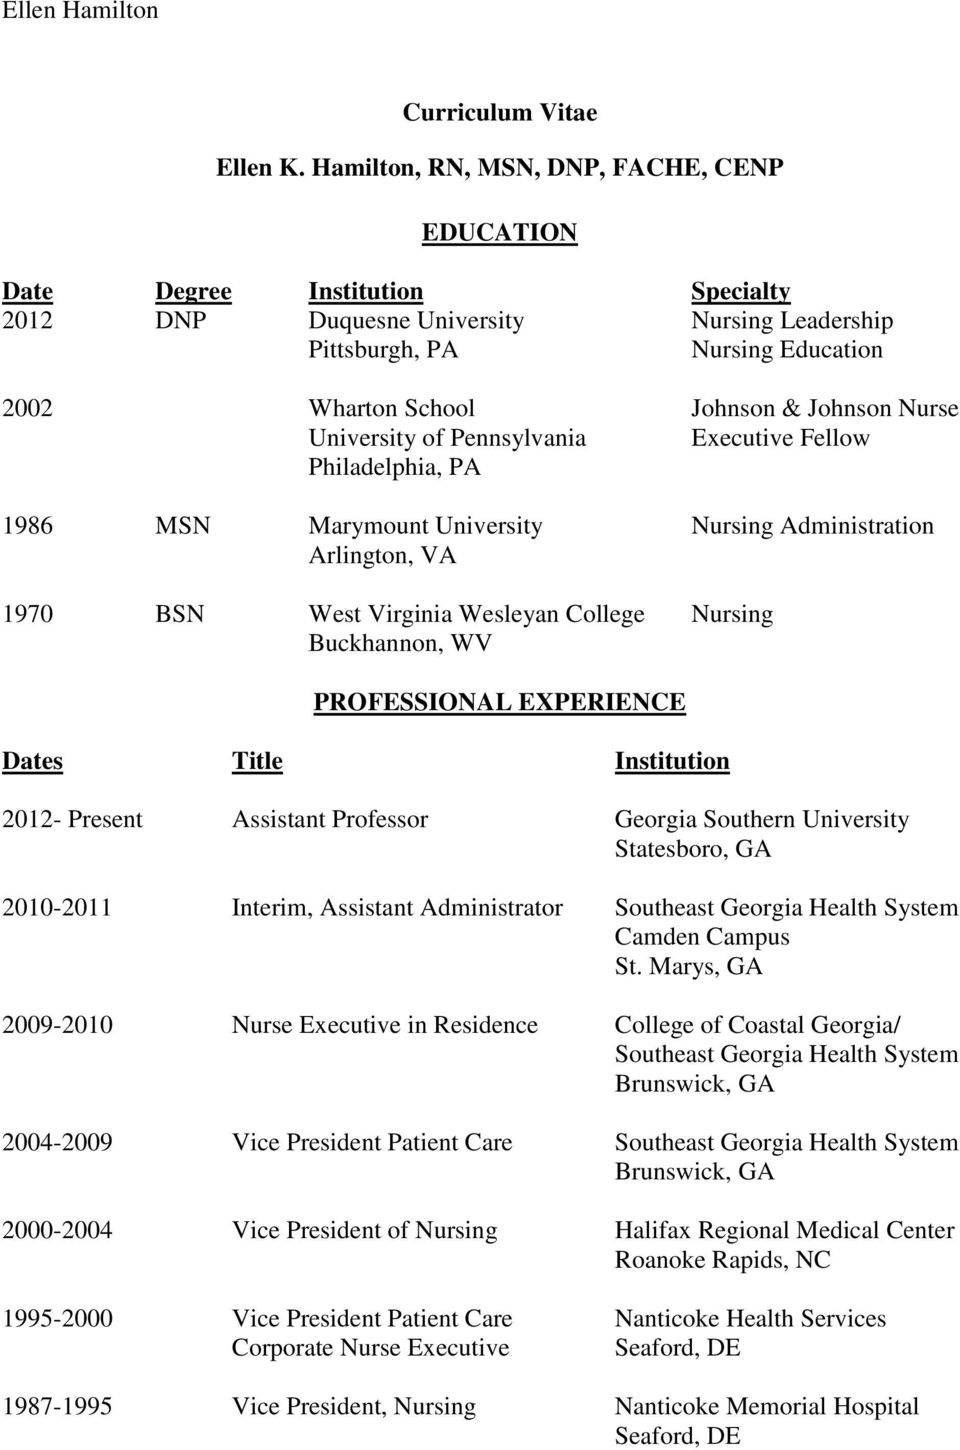 Nurse University of Pennsylvania Executive Fellow Philadelphia, PA 1986 MSN Marymount University Nursing Administration Arlington, VA 1970 BSN West Virginia Wesleyan College Nursing Buckhannon, WV